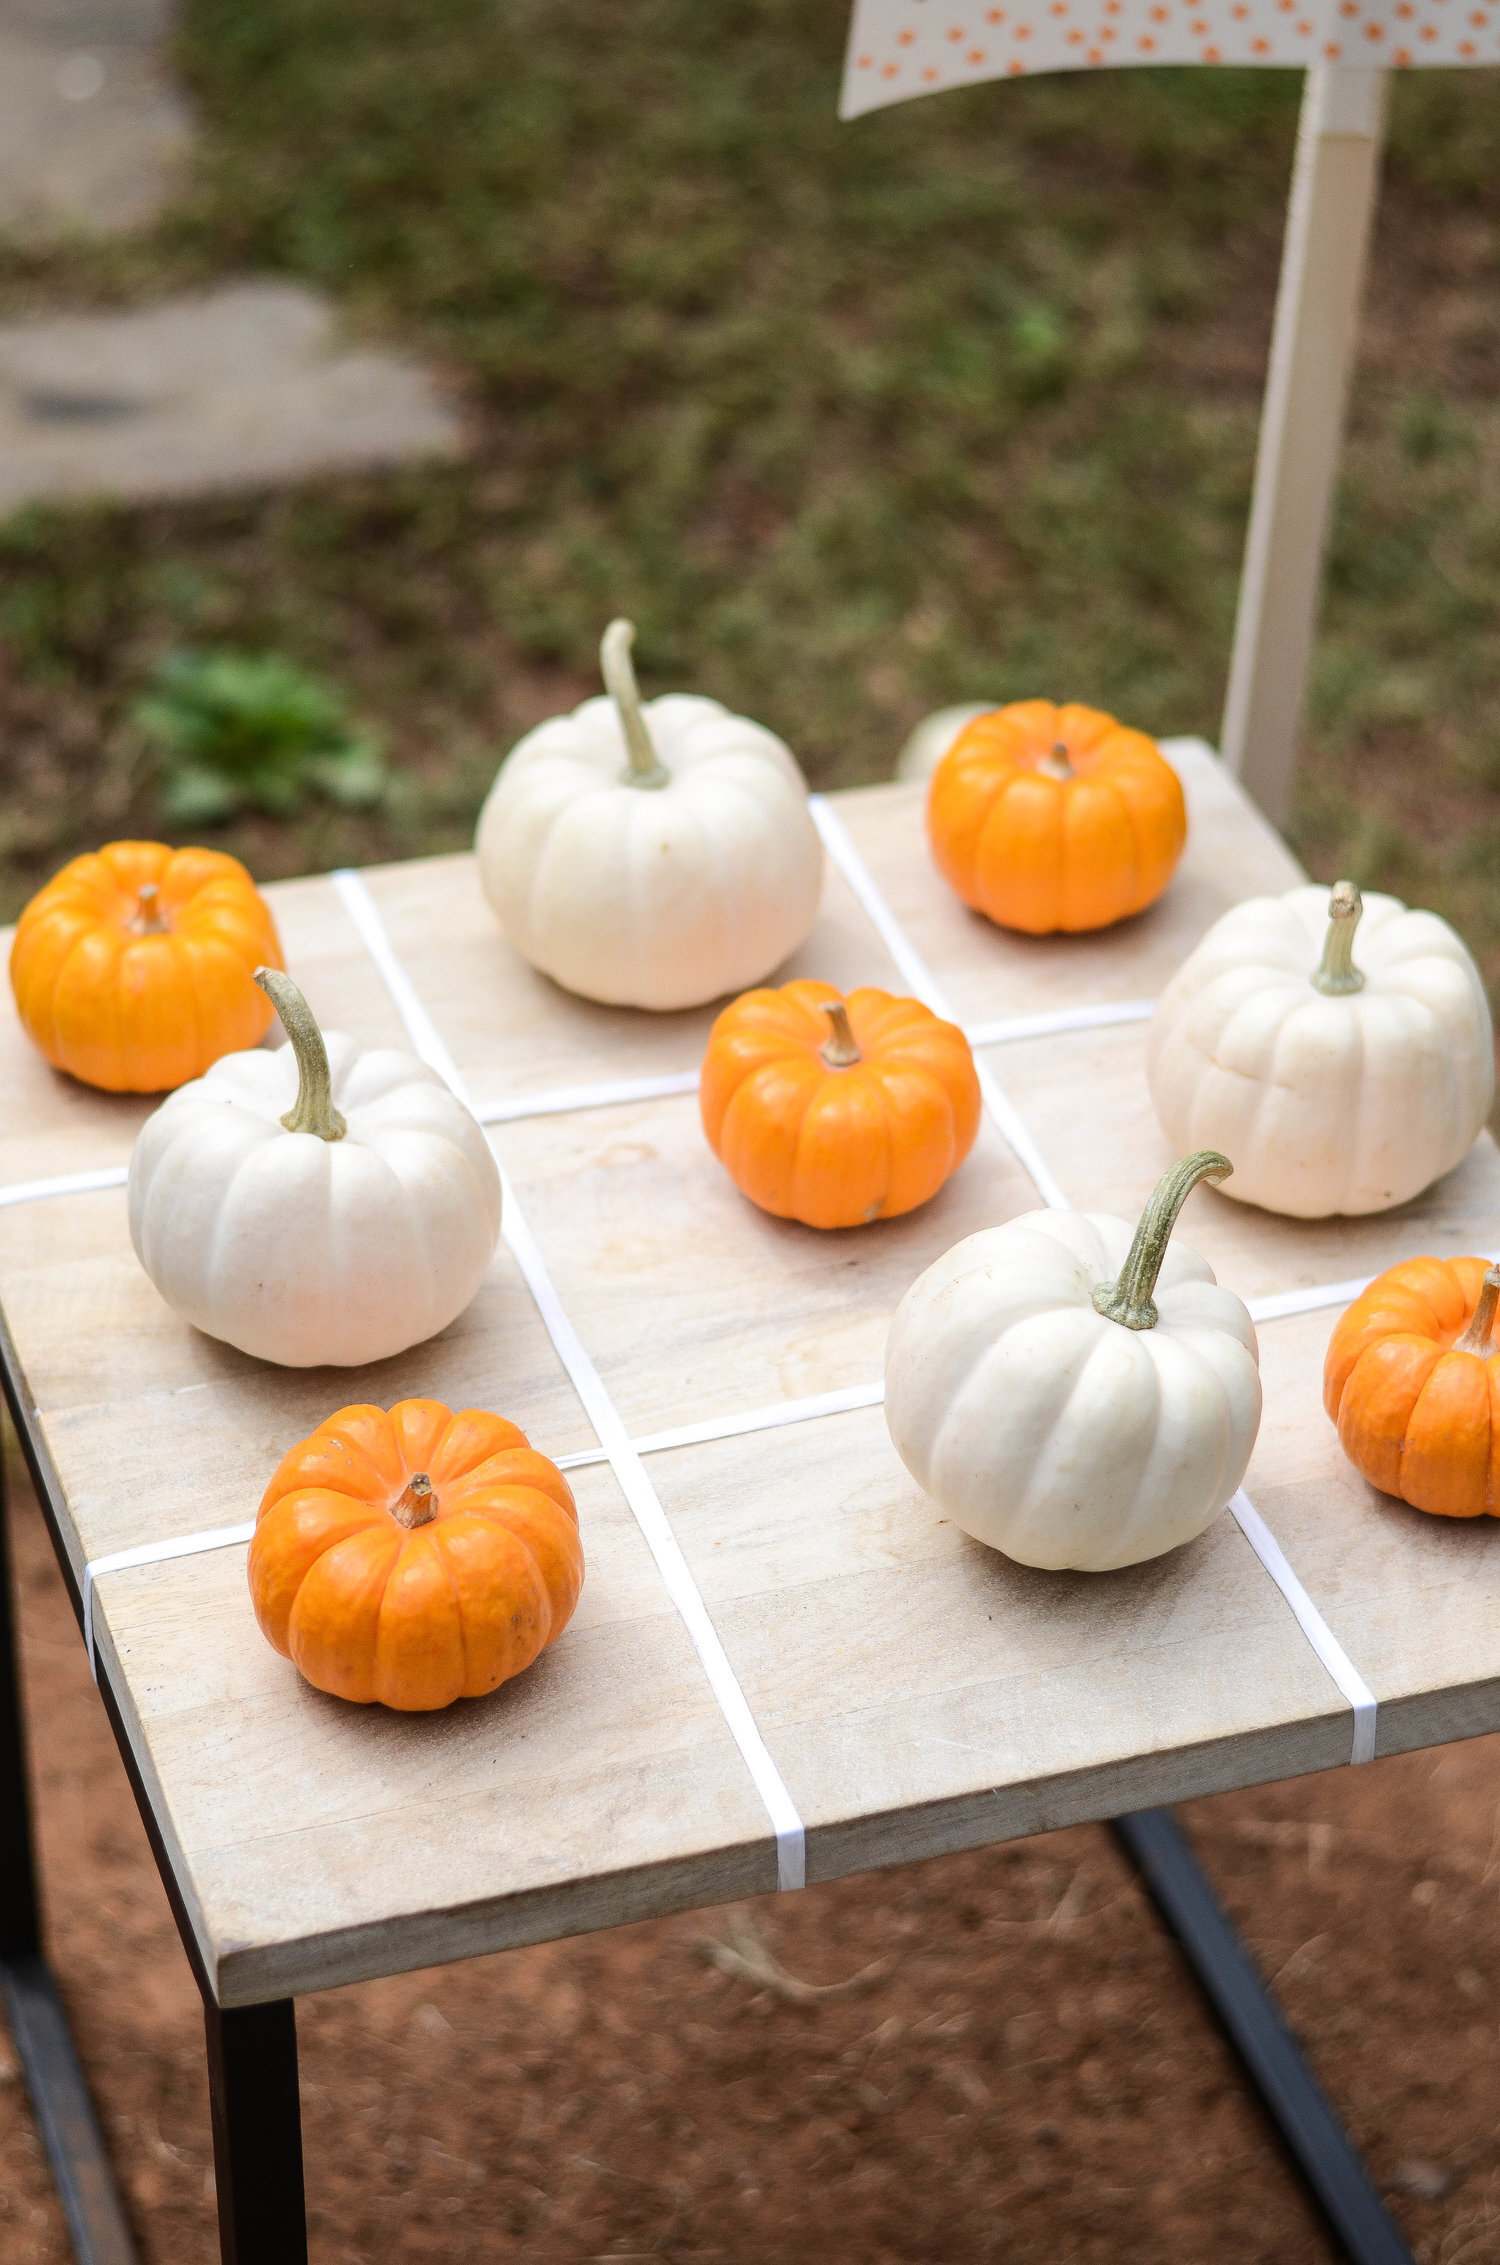 Tic Tac Toe - Grab the pumpkins, make a grid, and show your kids what a real tic tac toe champion looks like :)